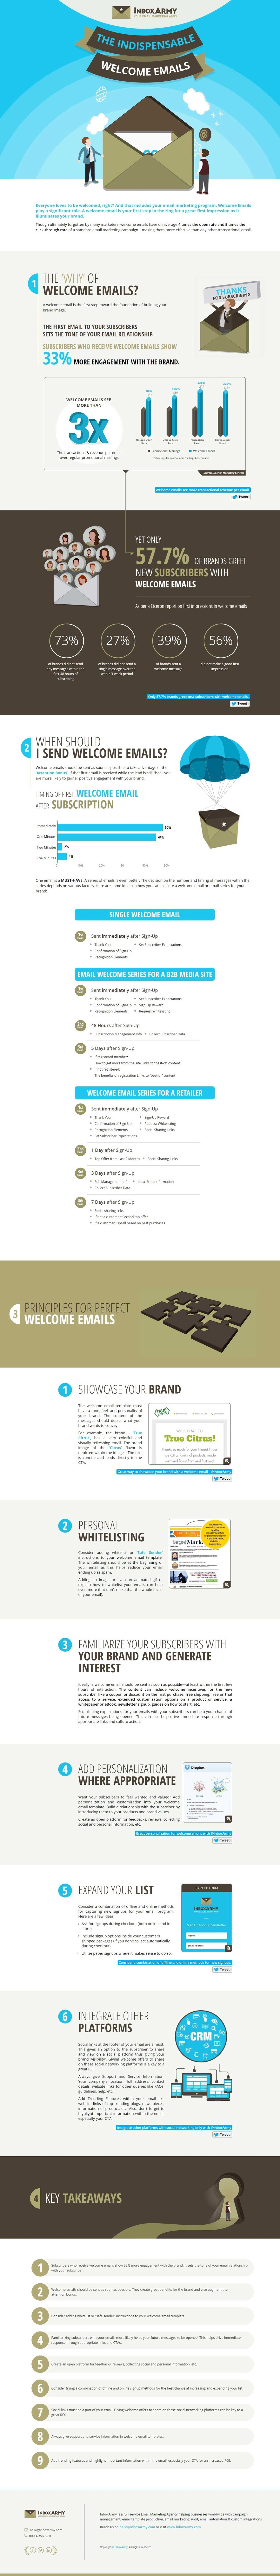 The Indispensable Welcome Email - #Infographic